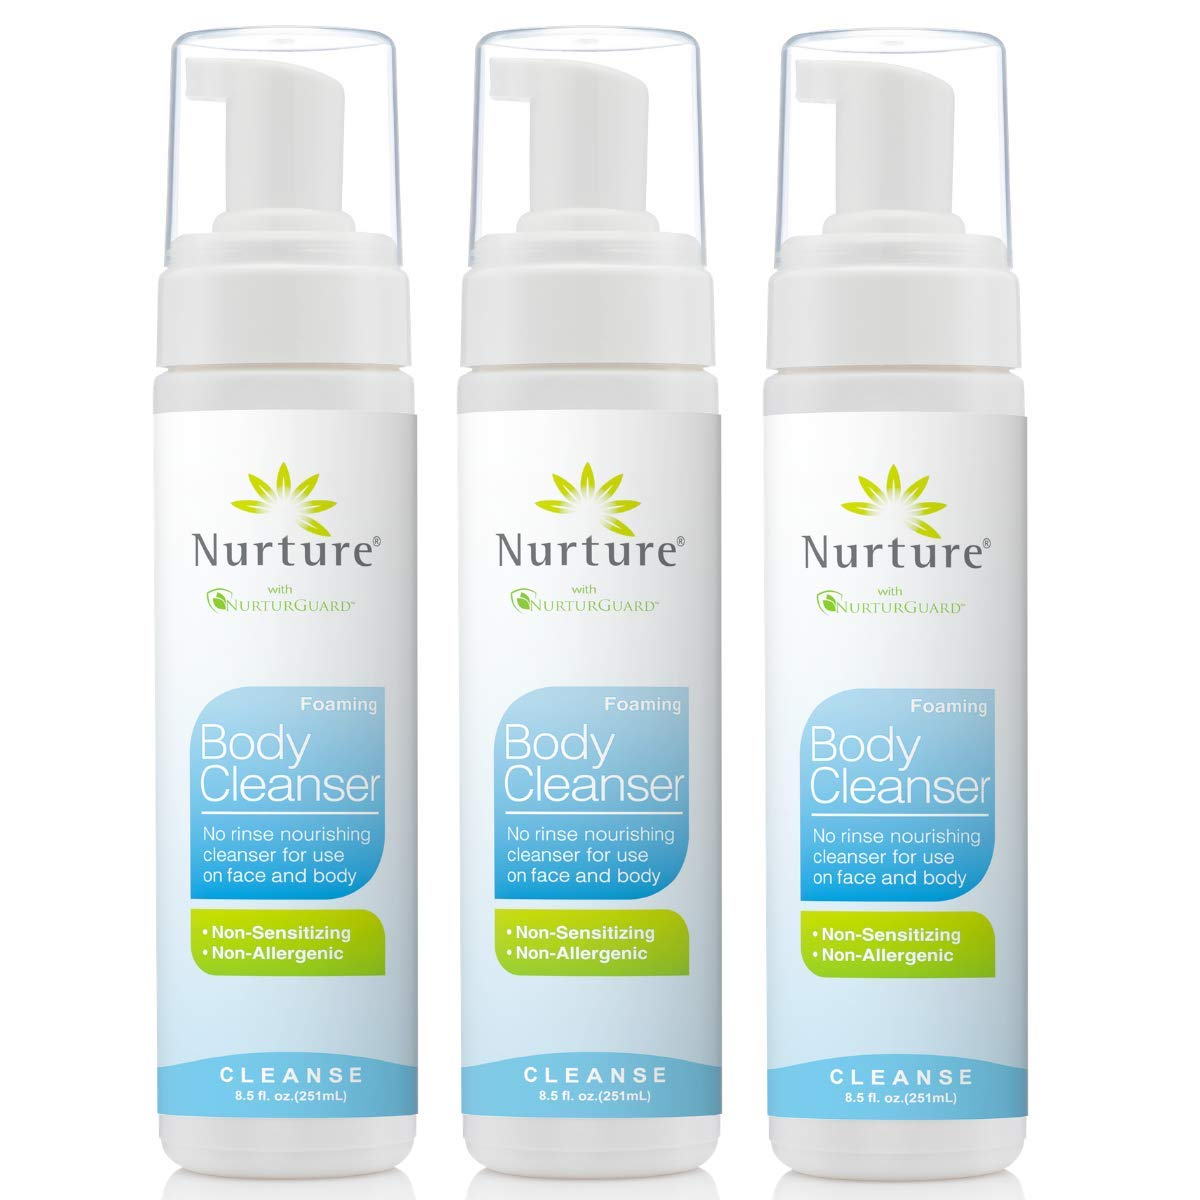 No Rinse Body Wash by Nurture | Full Body Cleansing Foam That Also Moisturizes, and Protects Skin - Non Allergenic - Non sensitizing - Rinse Free Wipe Away Cleanser - 3 Bottles by Nurture